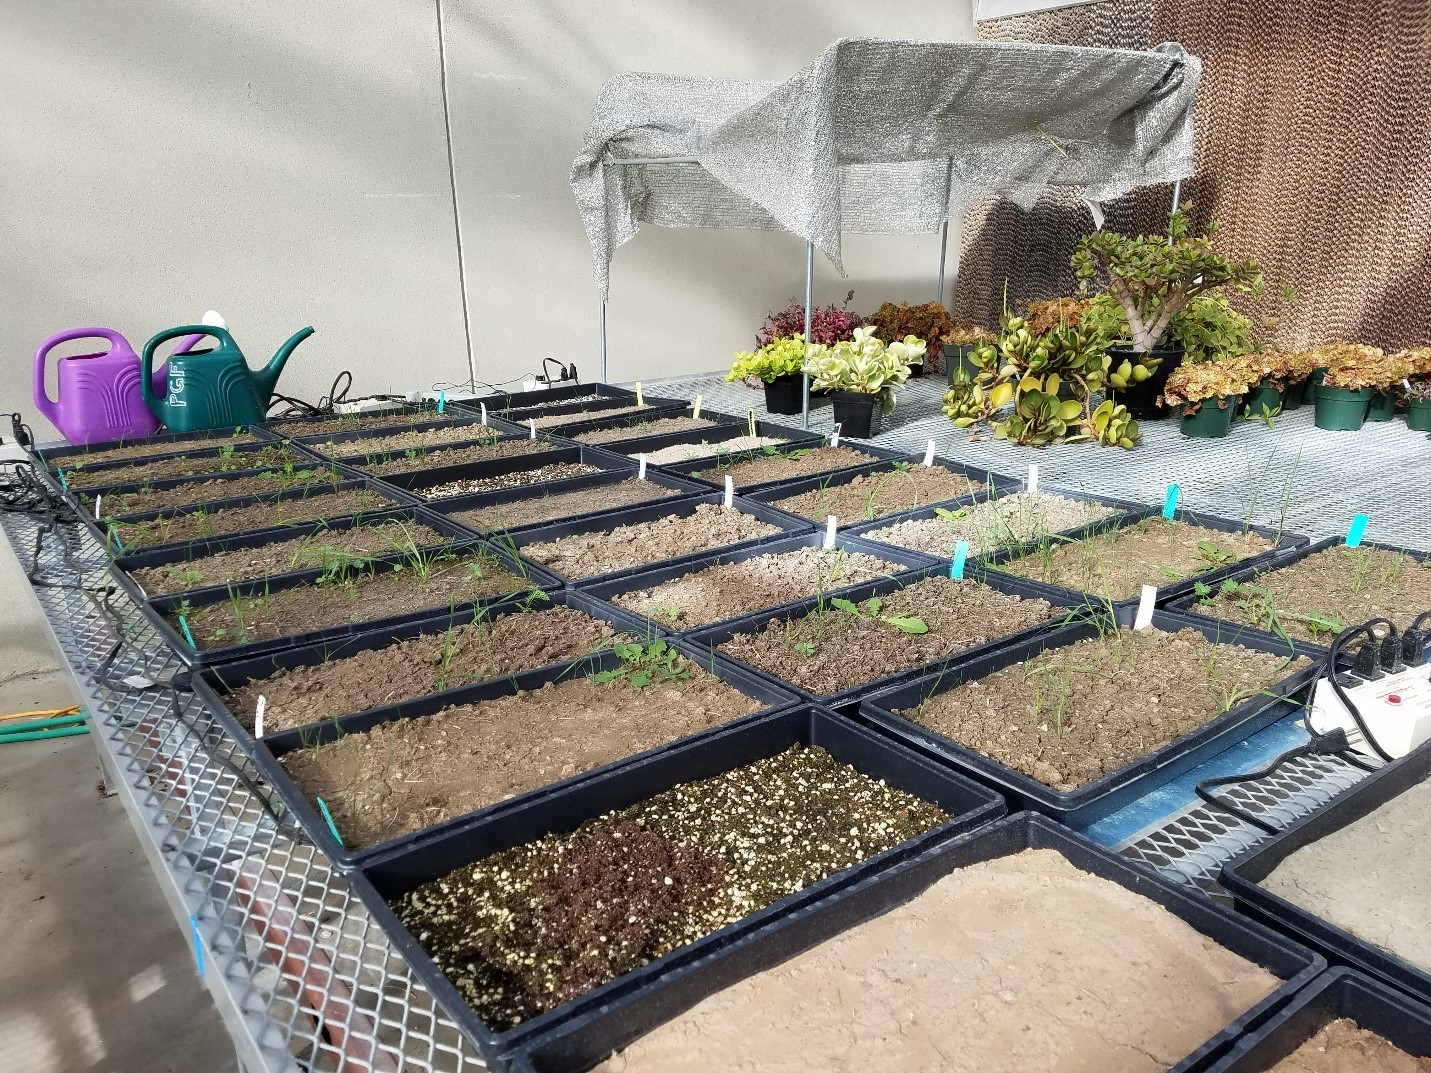 Soil seed bank samples growing in the CSU Plant Grown Facilities in November 2017